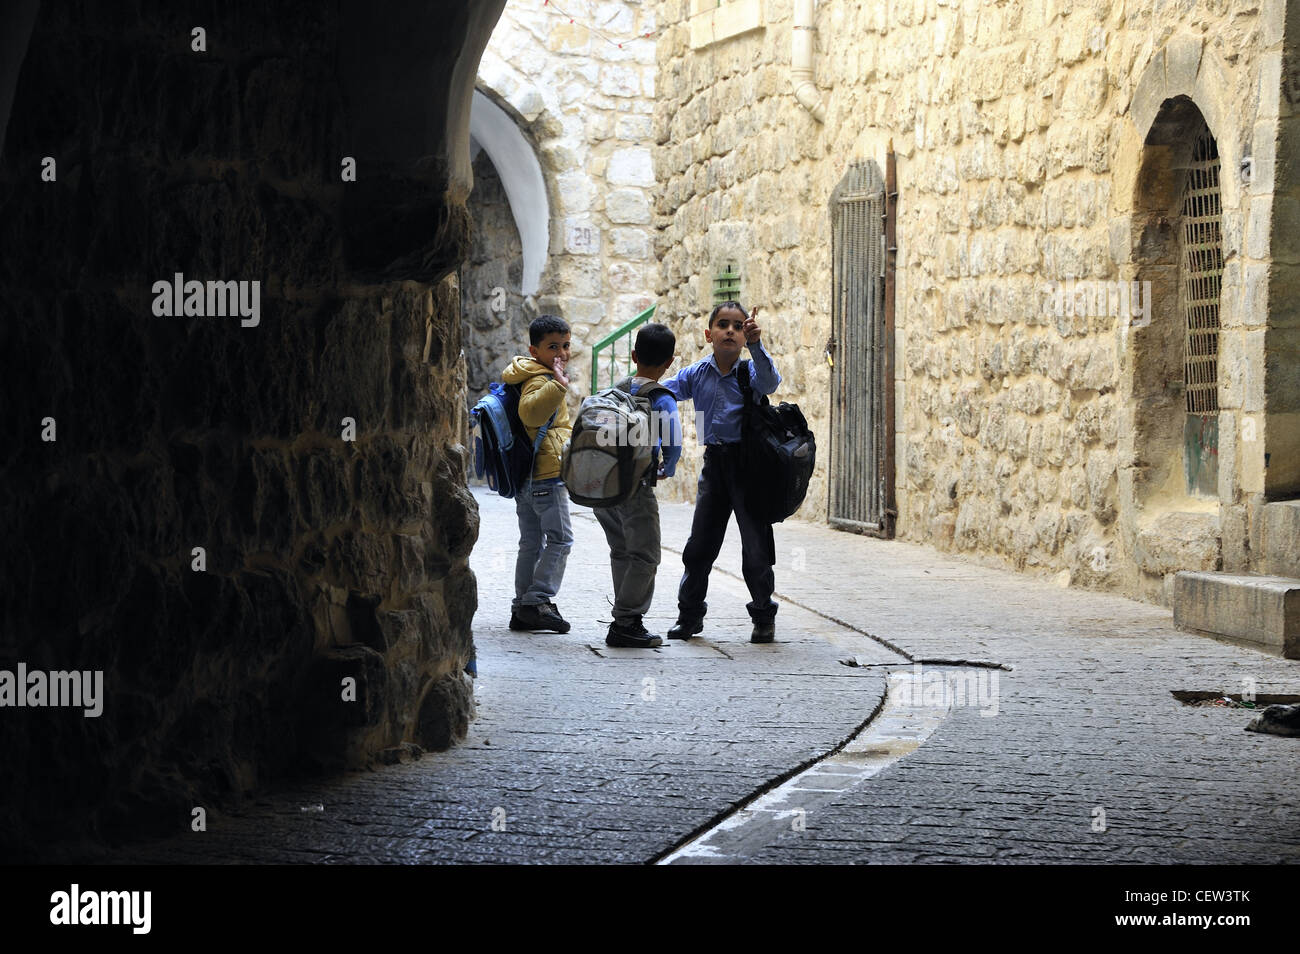 Children in the old city of Hebron West Bank Palestin - Stock Image